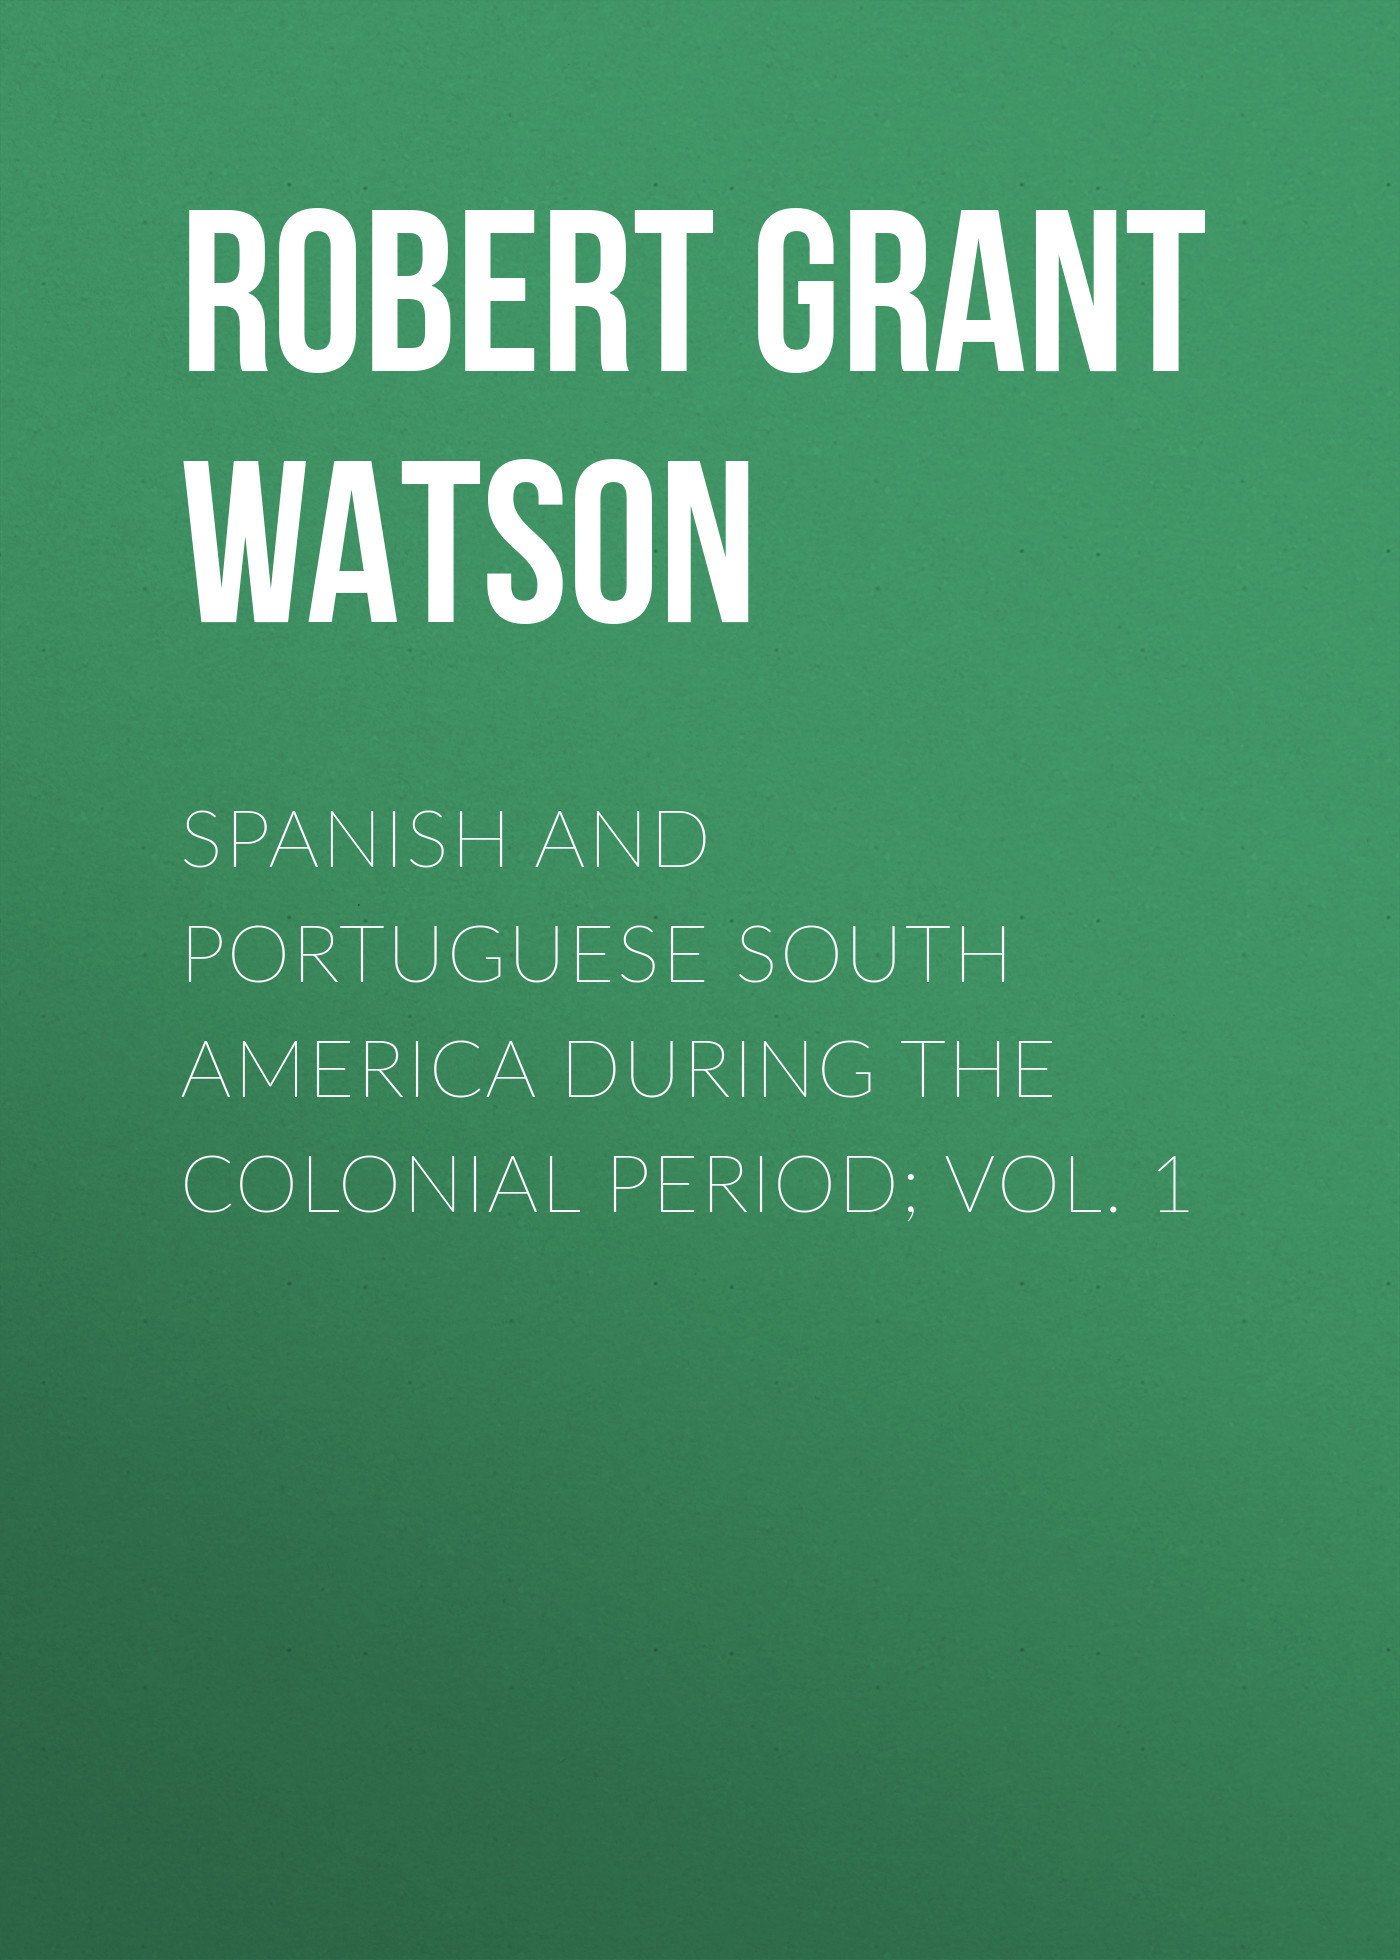 Robert Grant Watson Spanish and Portuguese South America during the Colonial Period; Vol. 1 irs vol 5 corporate america